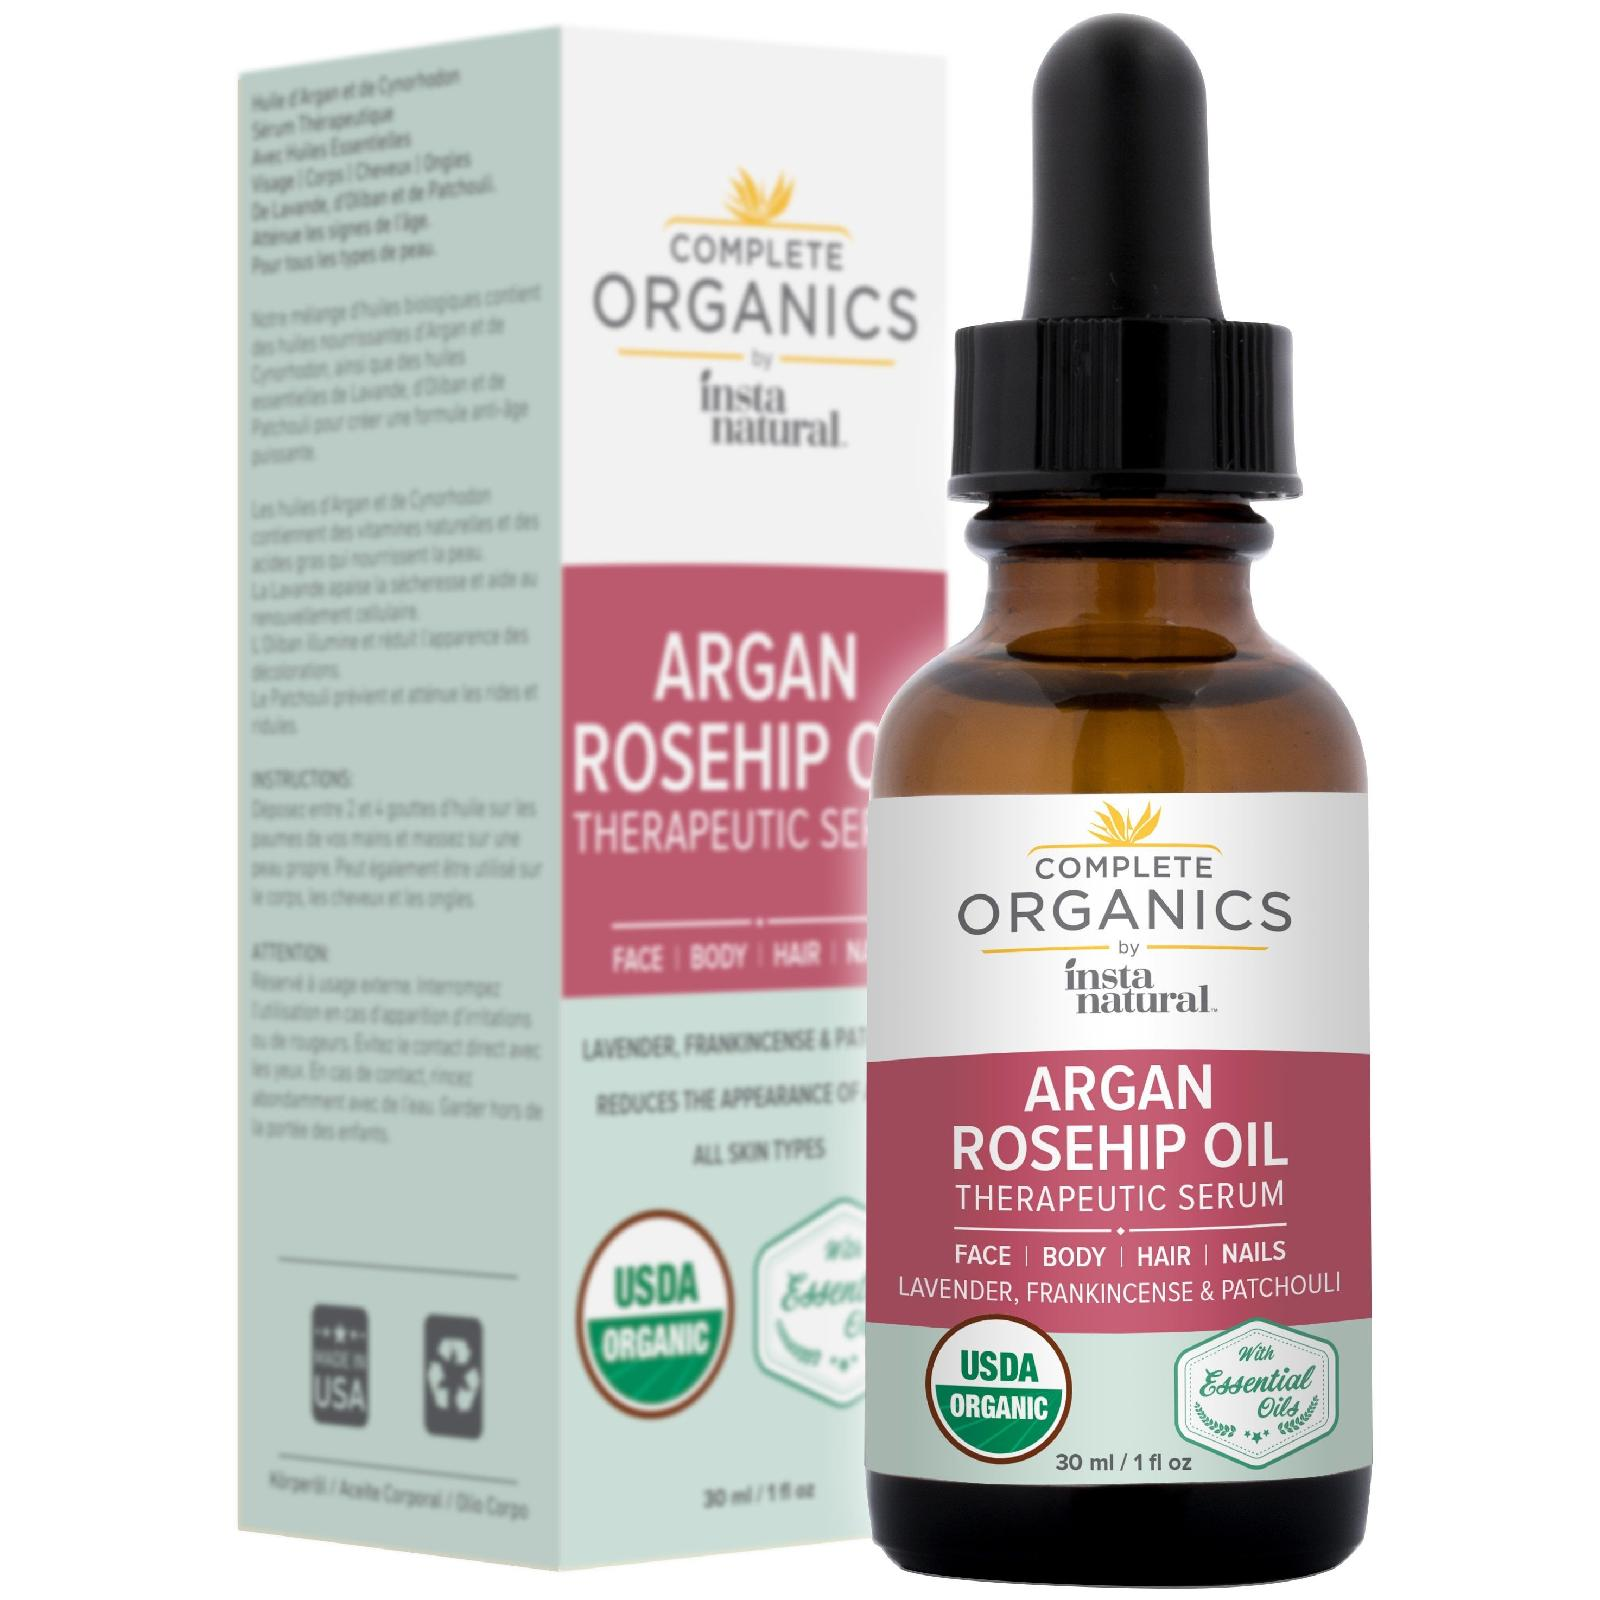 Complete Organics - Argan Rosehip Oil Therapeutic Serum